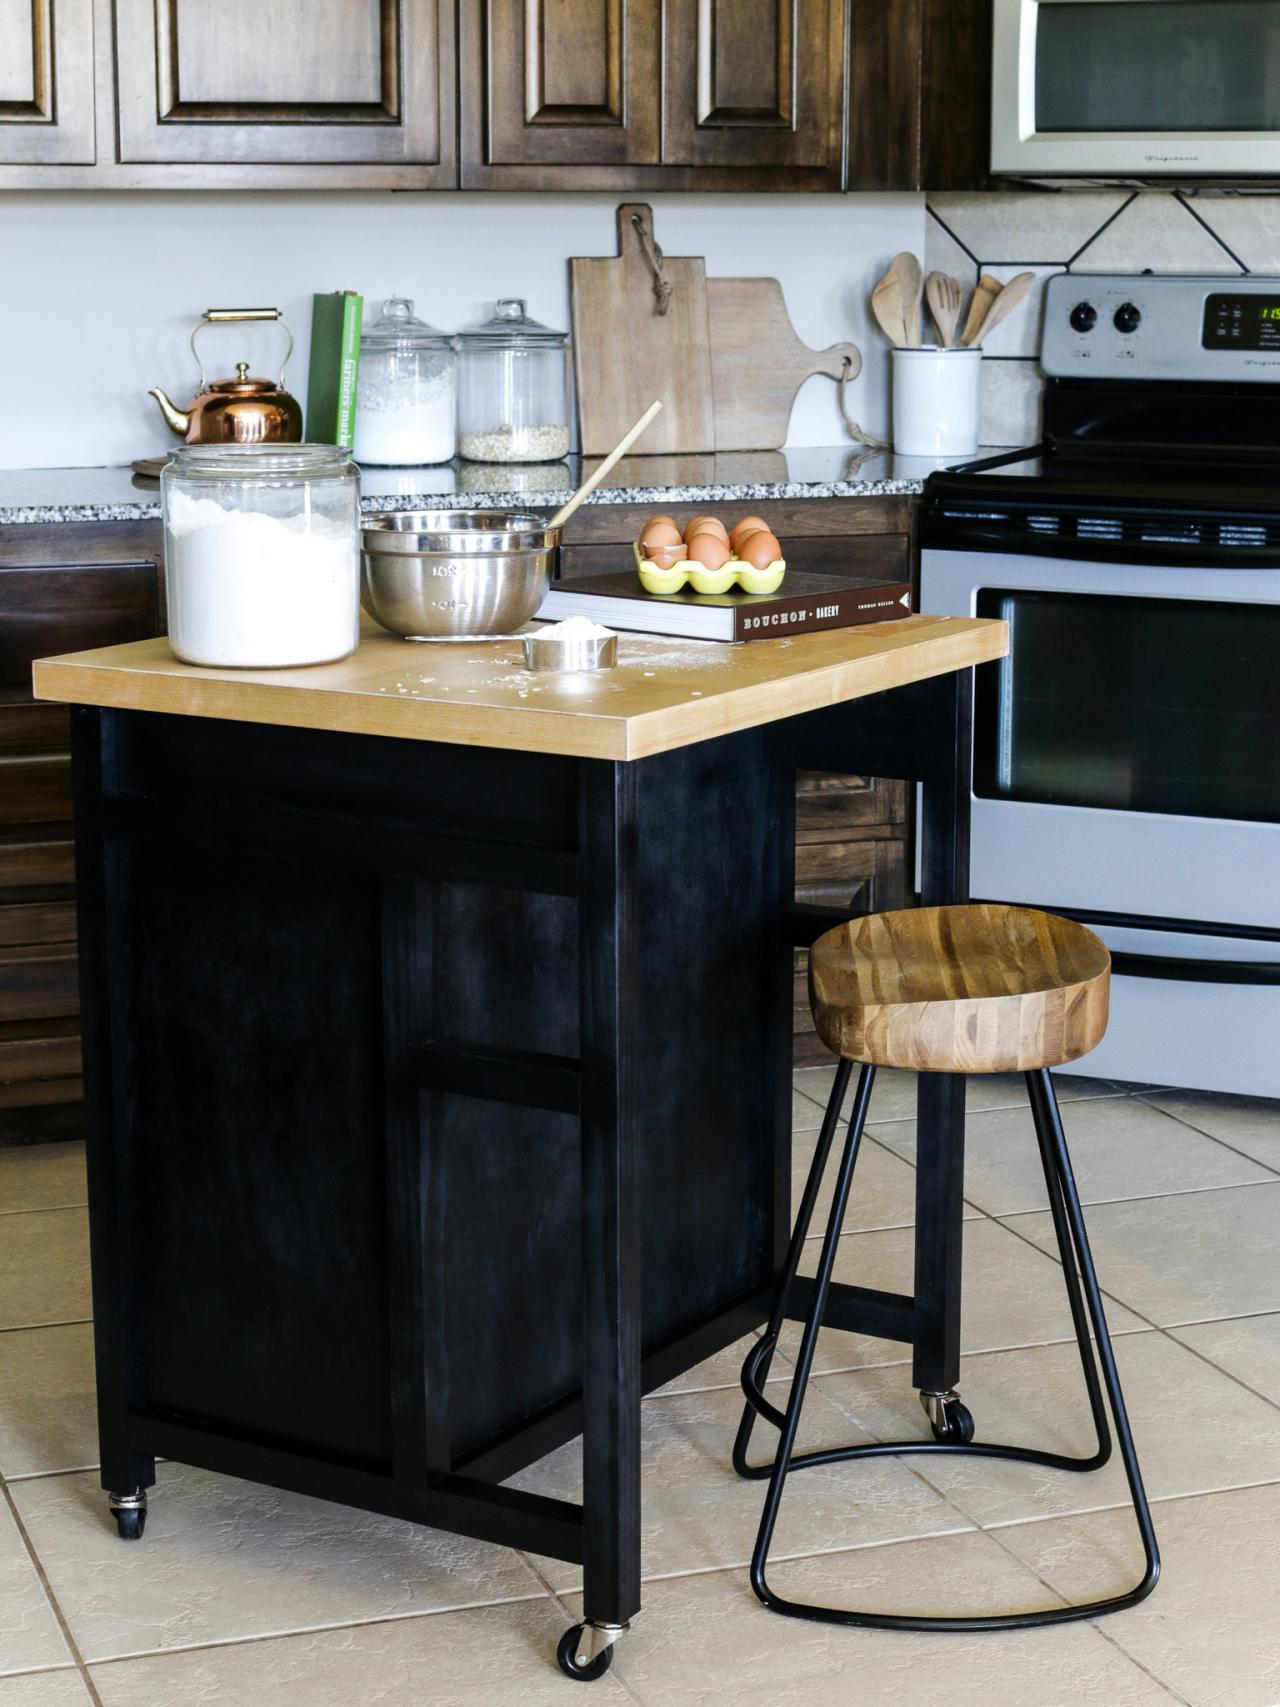 kitchen islands wheels pinterest - photo #41